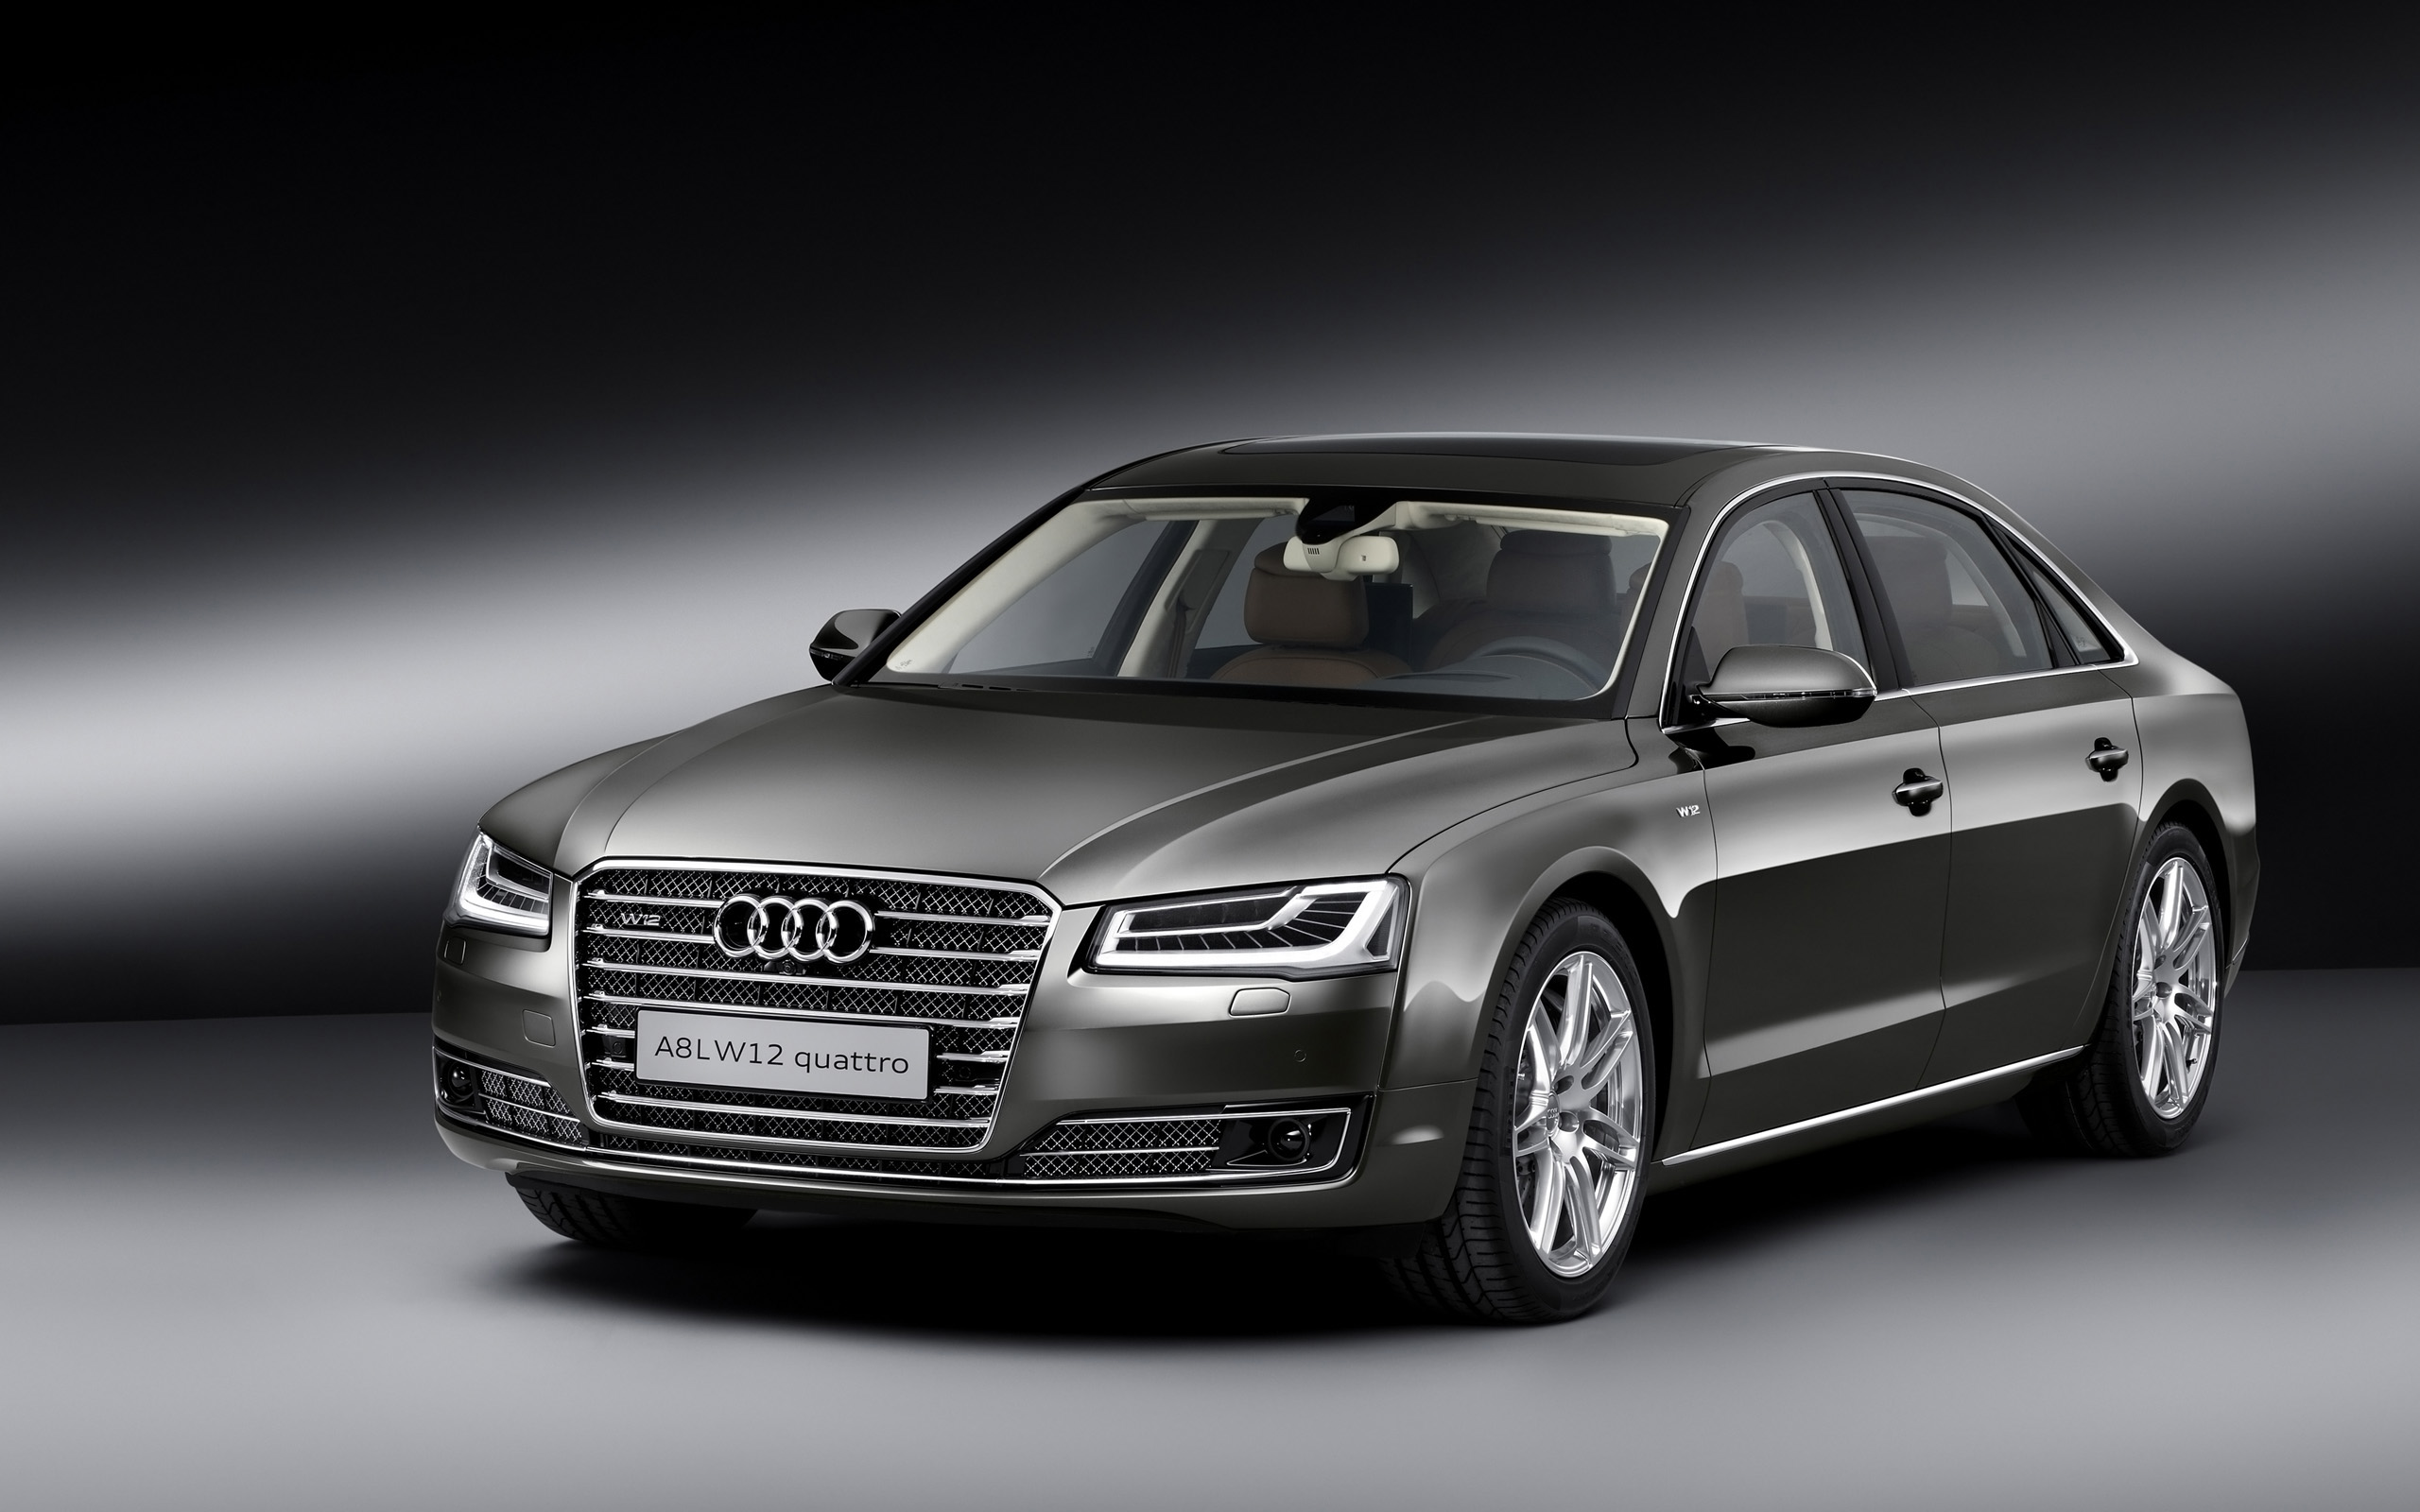 Audi A8 L W12 Exclusive 2014 Wallpaper